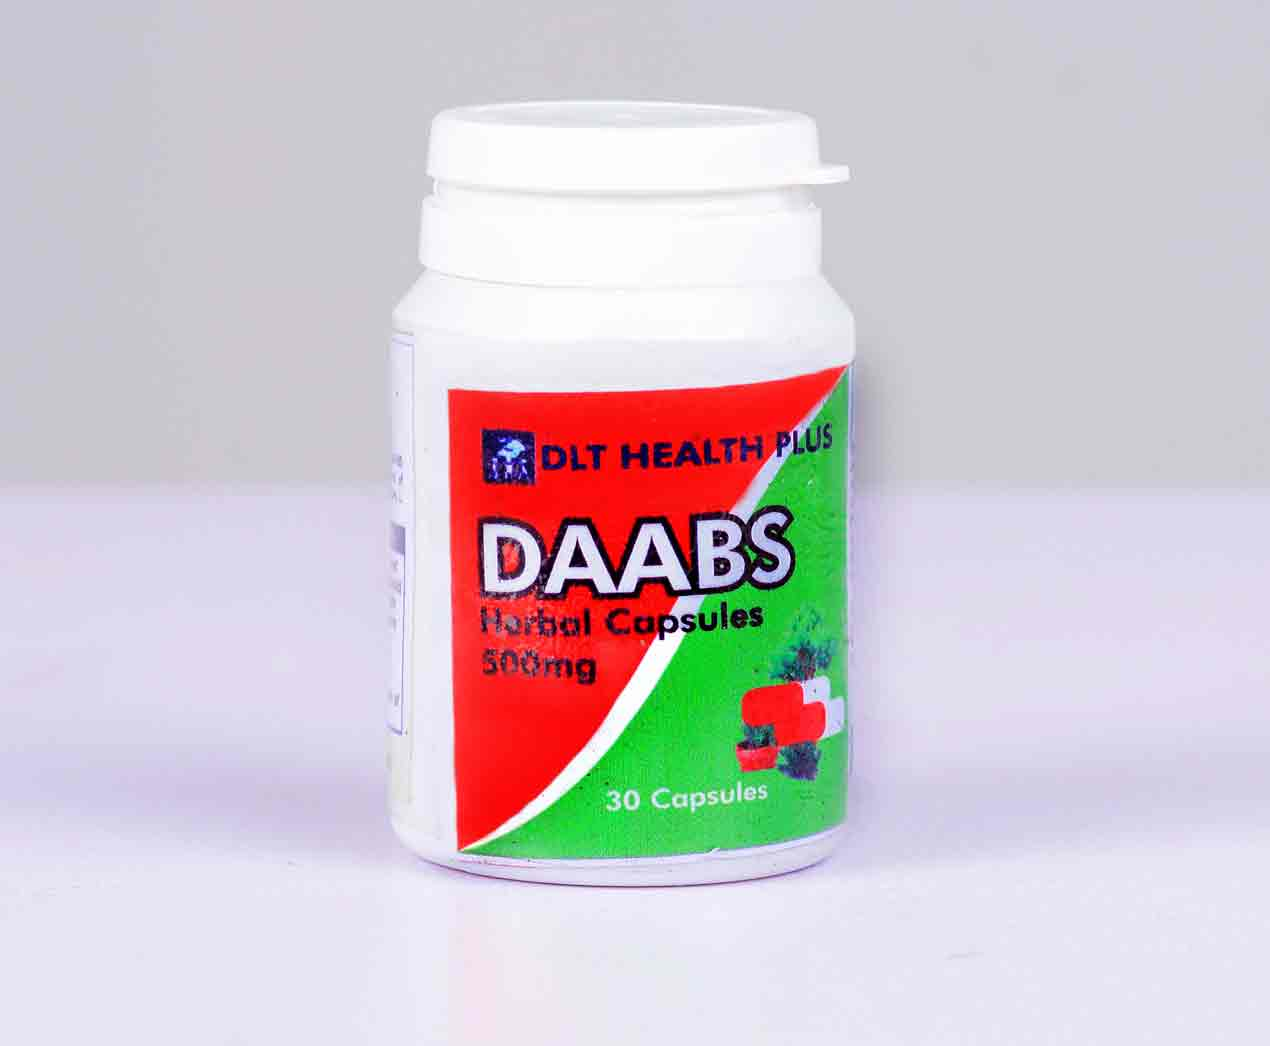 DLT HEALTH PLUS DAABS Herbal Capsule